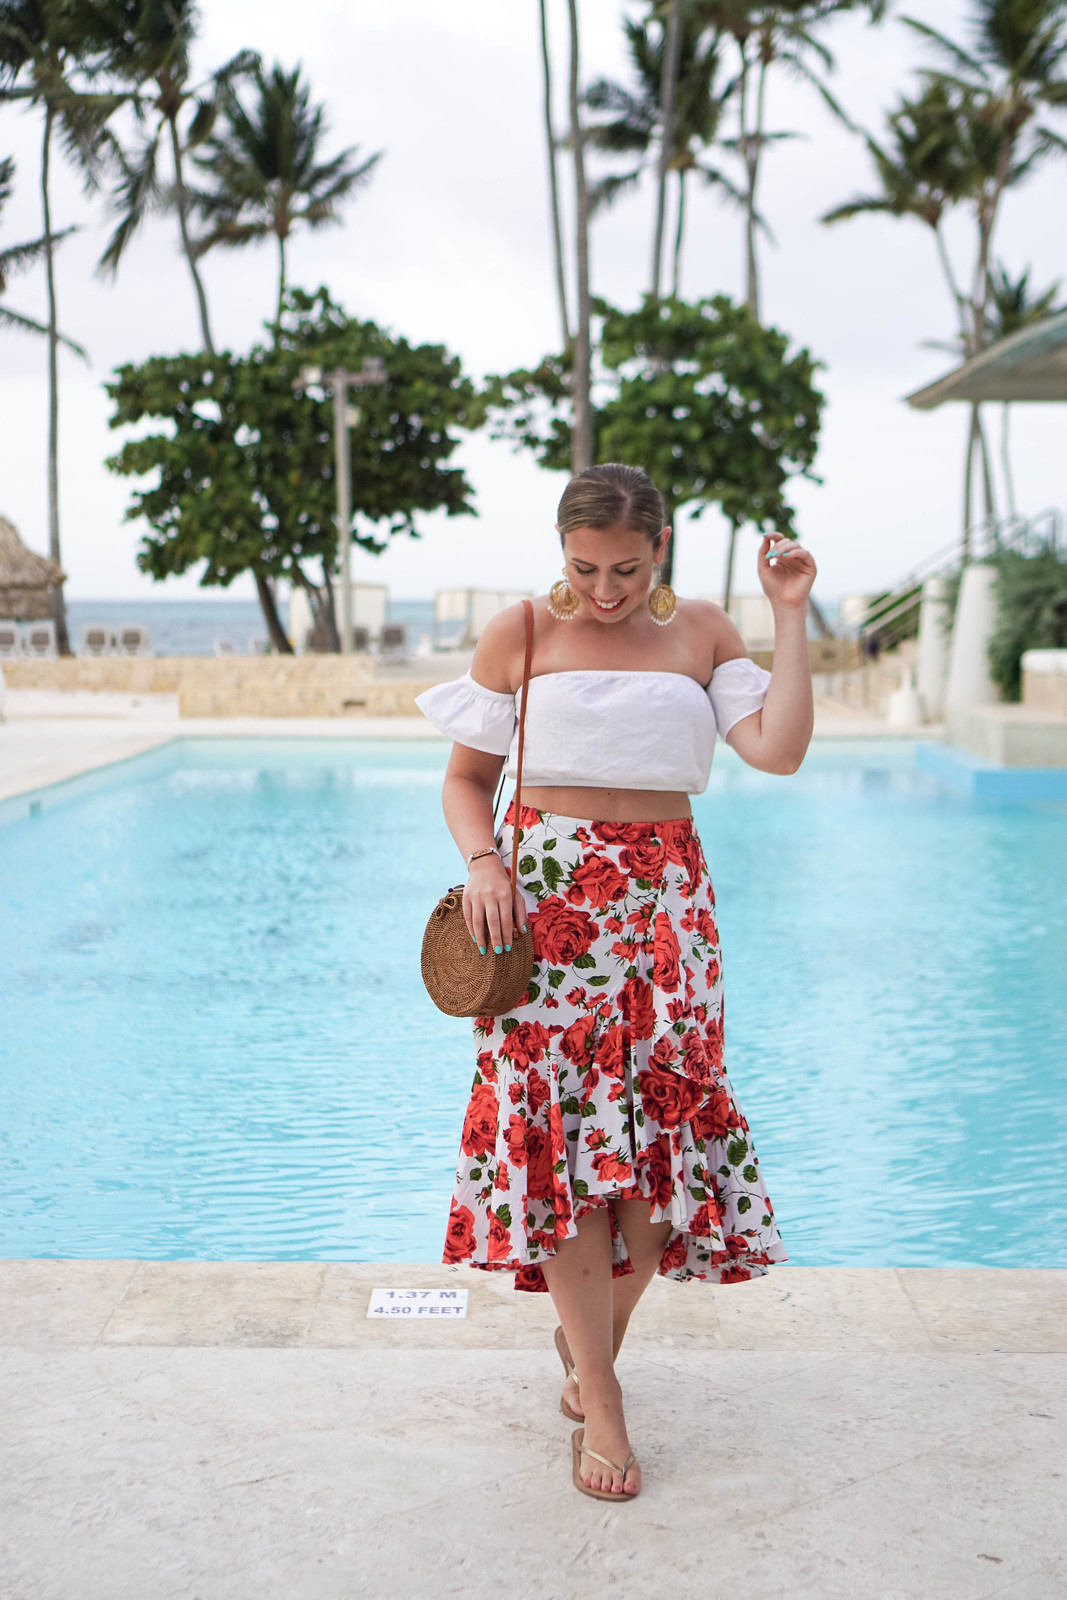 White Off Should Crop Top Red Floral Ruffle Midi Skirt Tropical Vacation Outfit Punta Cana Holiday Summer Palm Trees Beach